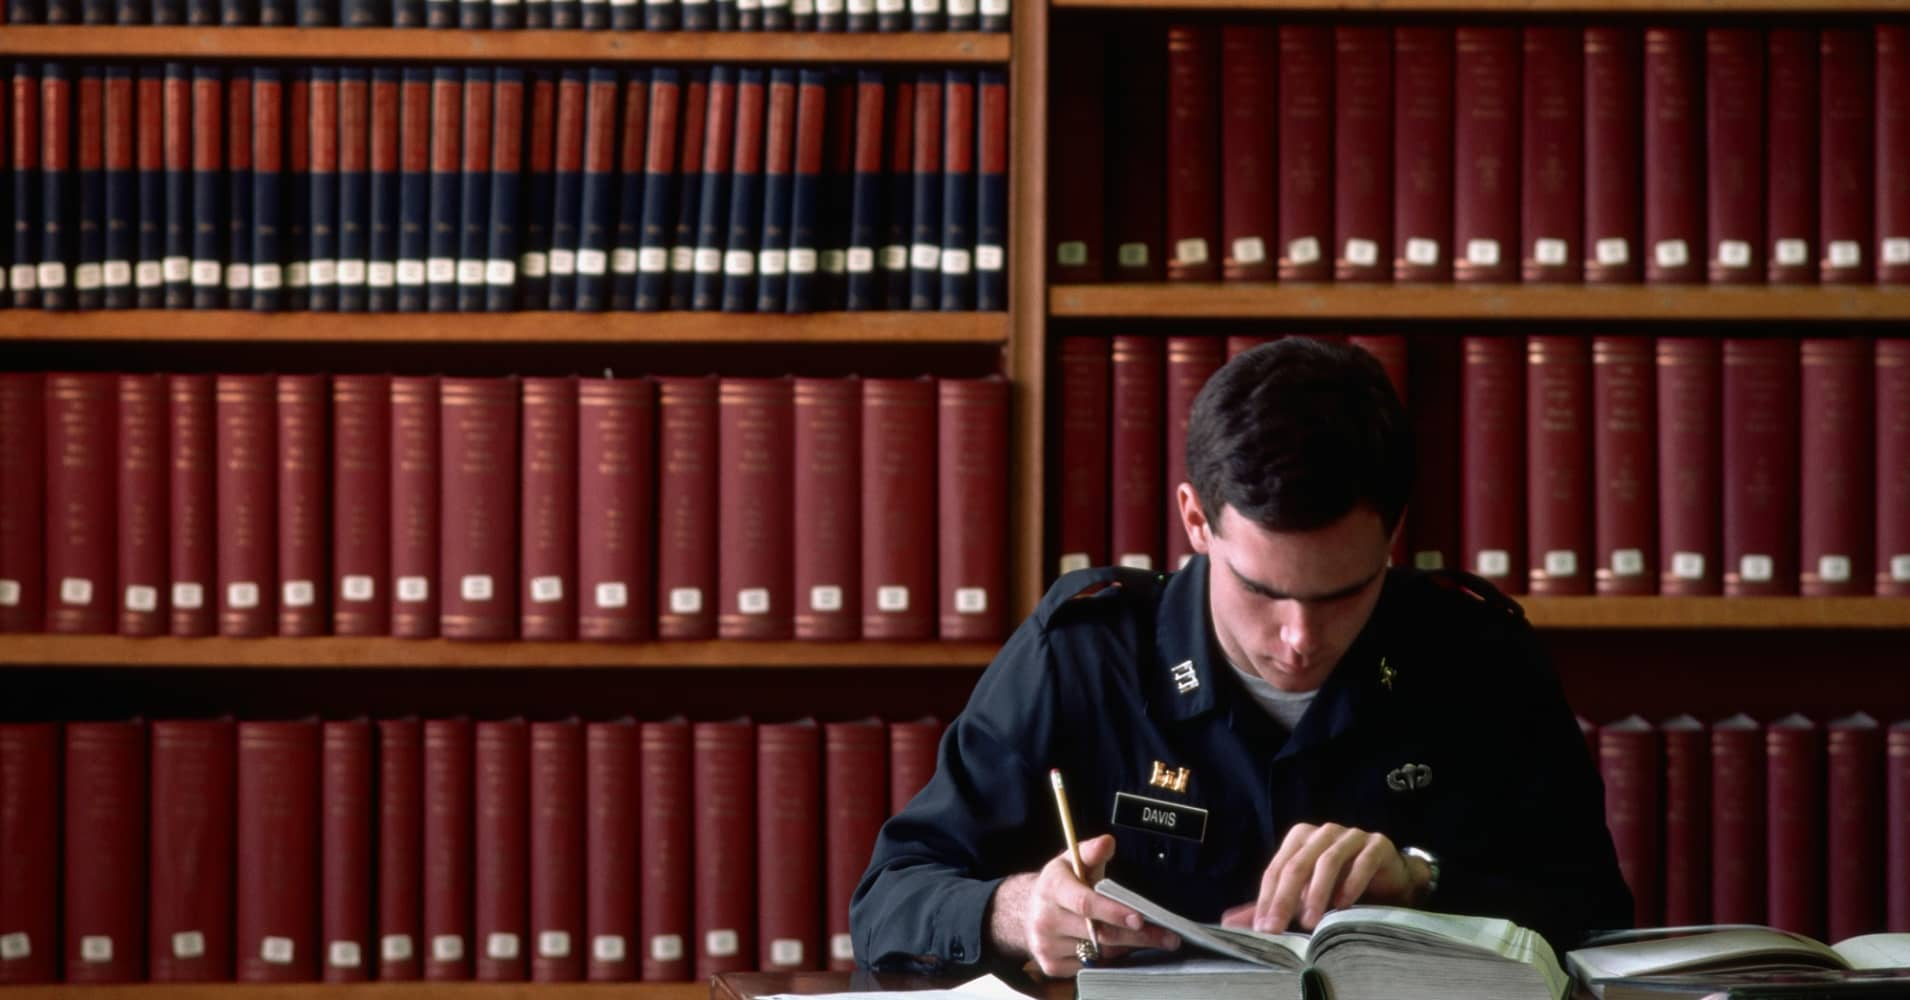 A military academy student studies in a library at West Point.